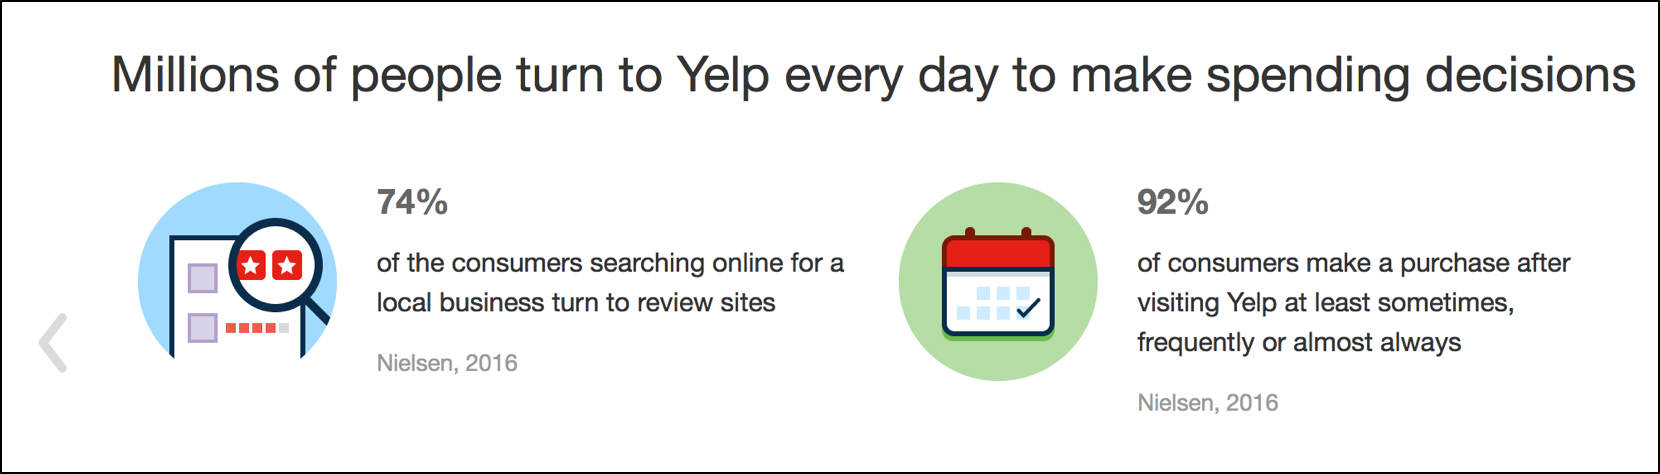 Yelp Valued For Growth, But Relying On Miracles